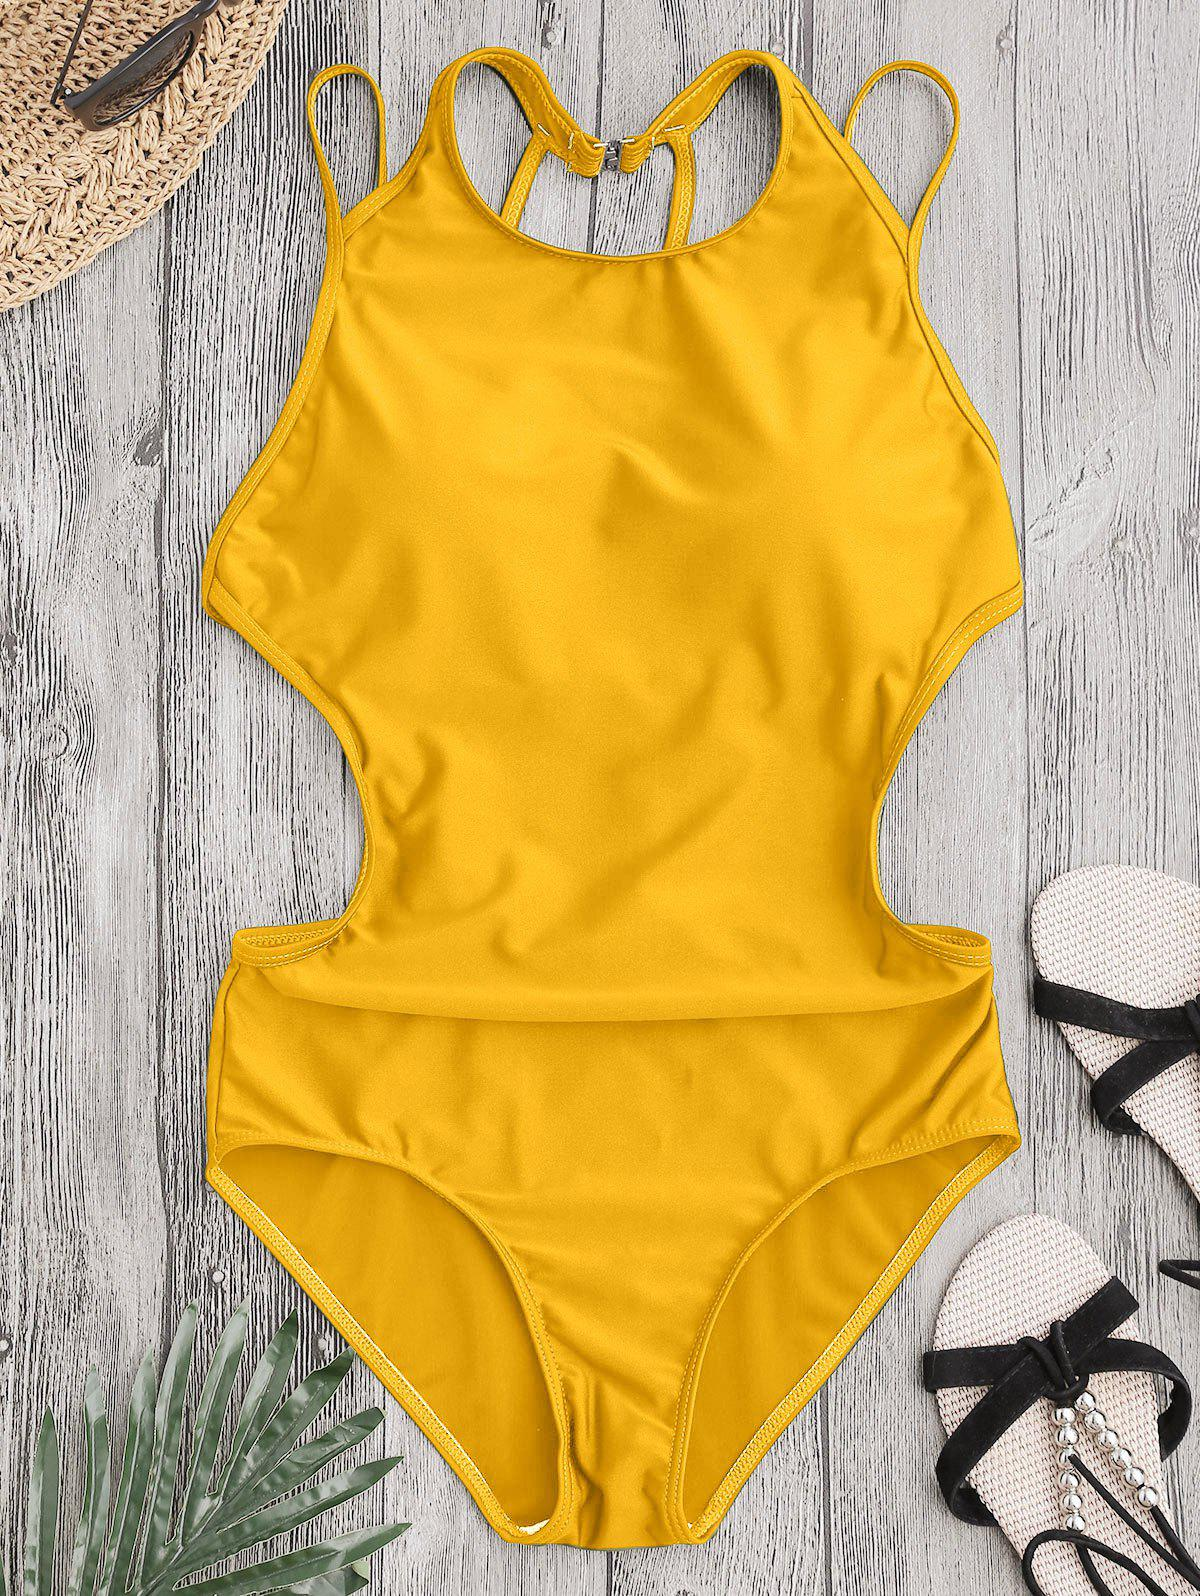 Back Strappy Padded SwimwearWOMEN<br><br>Size: L; Color: YELLOW; Swimwear Type: One Piece; Gender: For Women; Material: Chinlon,Spandex; Bra Style: Padded; Support Type: Wire Free; Neckline: Round Collar; Pattern Type: Solid Color; Waist: Natural; Elasticity: Elastic; Weight: 0.2200kg; Package Contents: 1 x Swimwear;